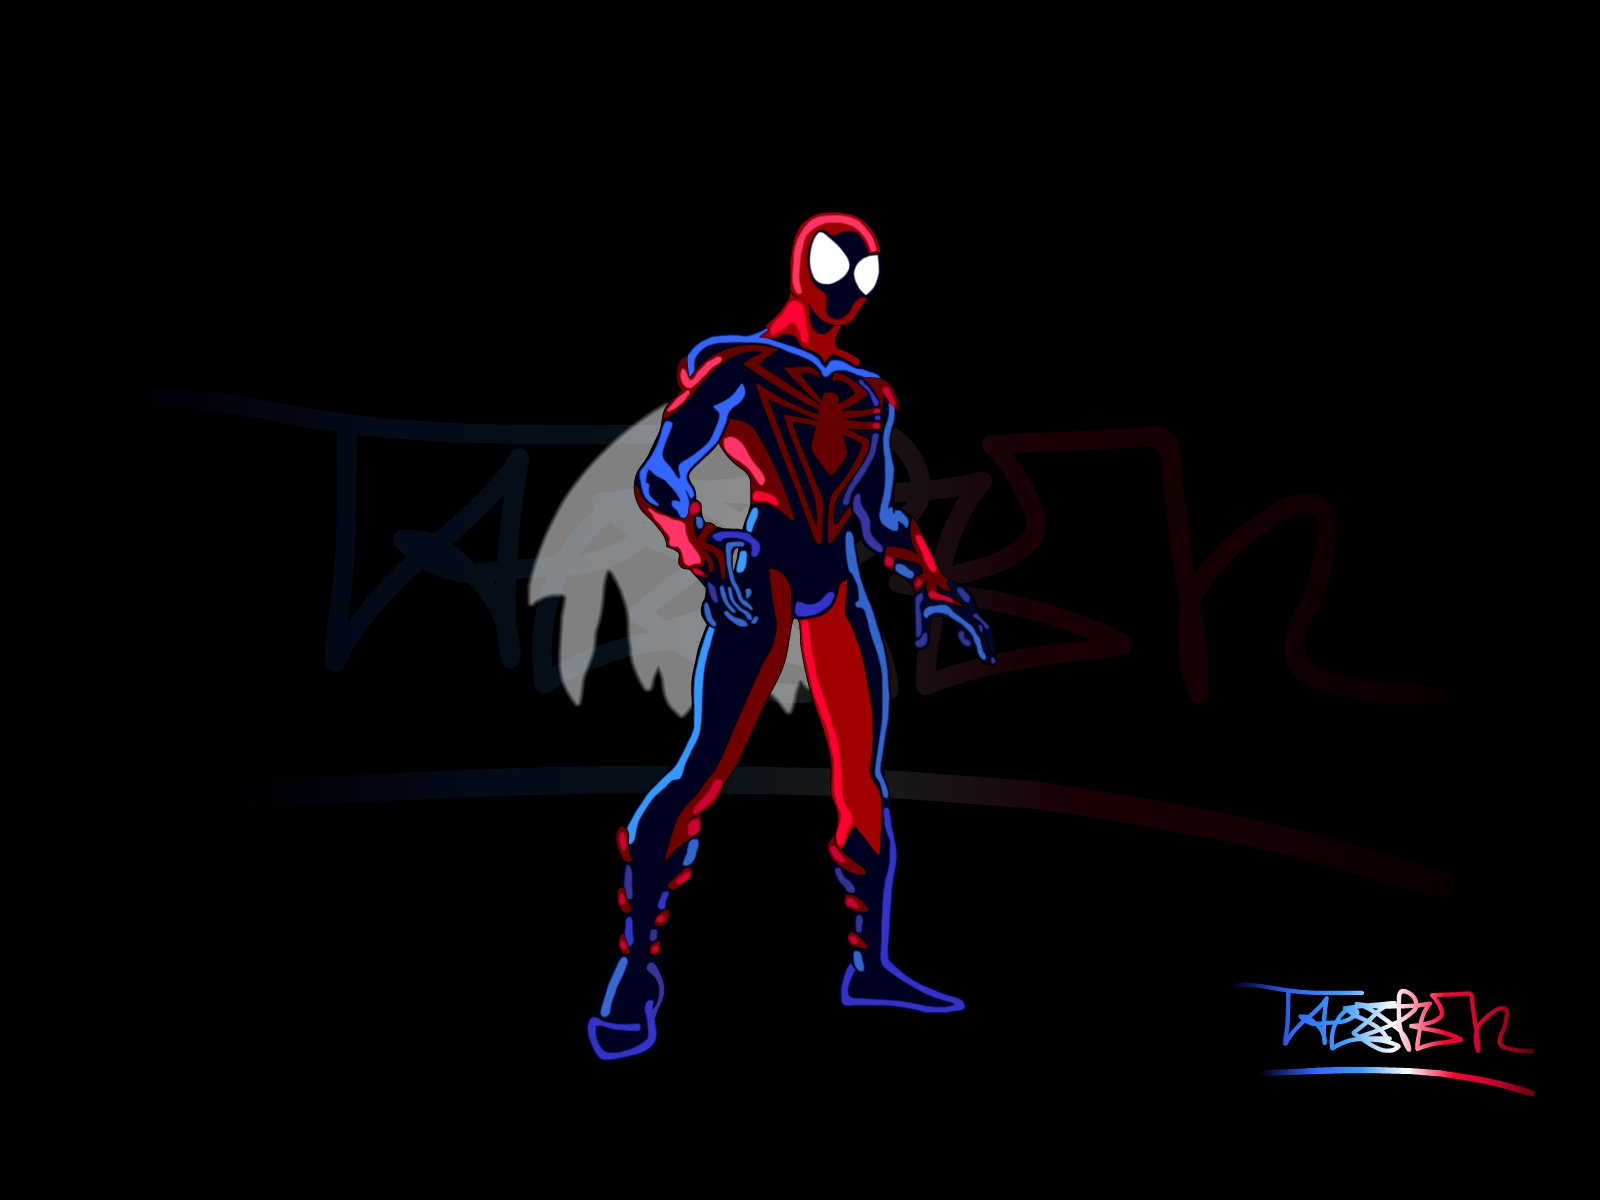 Spiderman Unlimited Wallpaper by talster 1600x1200